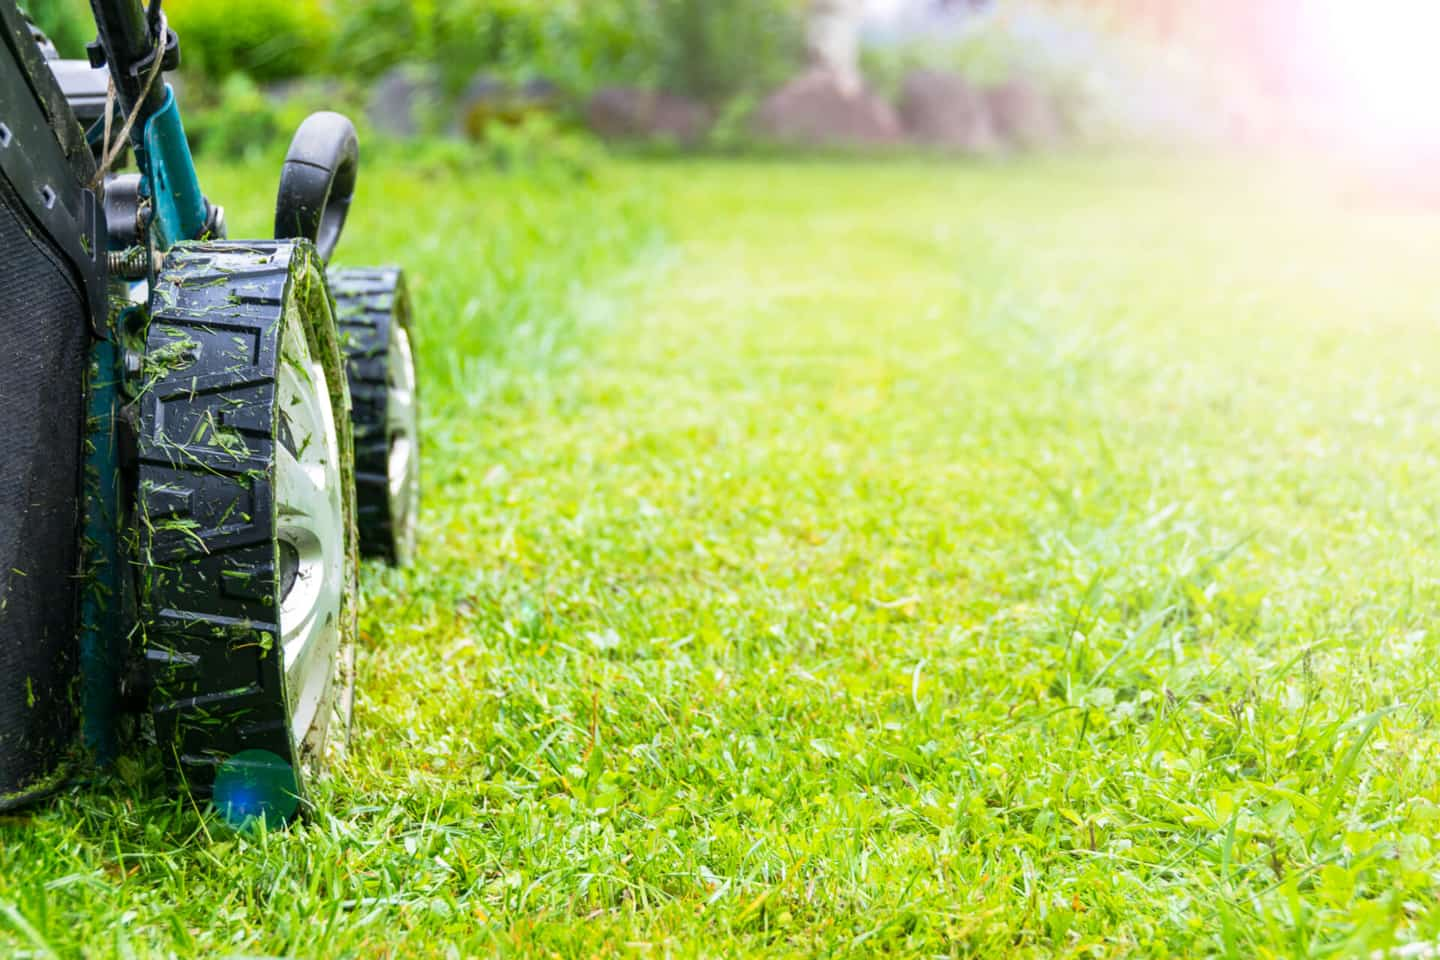 Lawn Care Services Near Me - Book now from $29 - Lawn Love